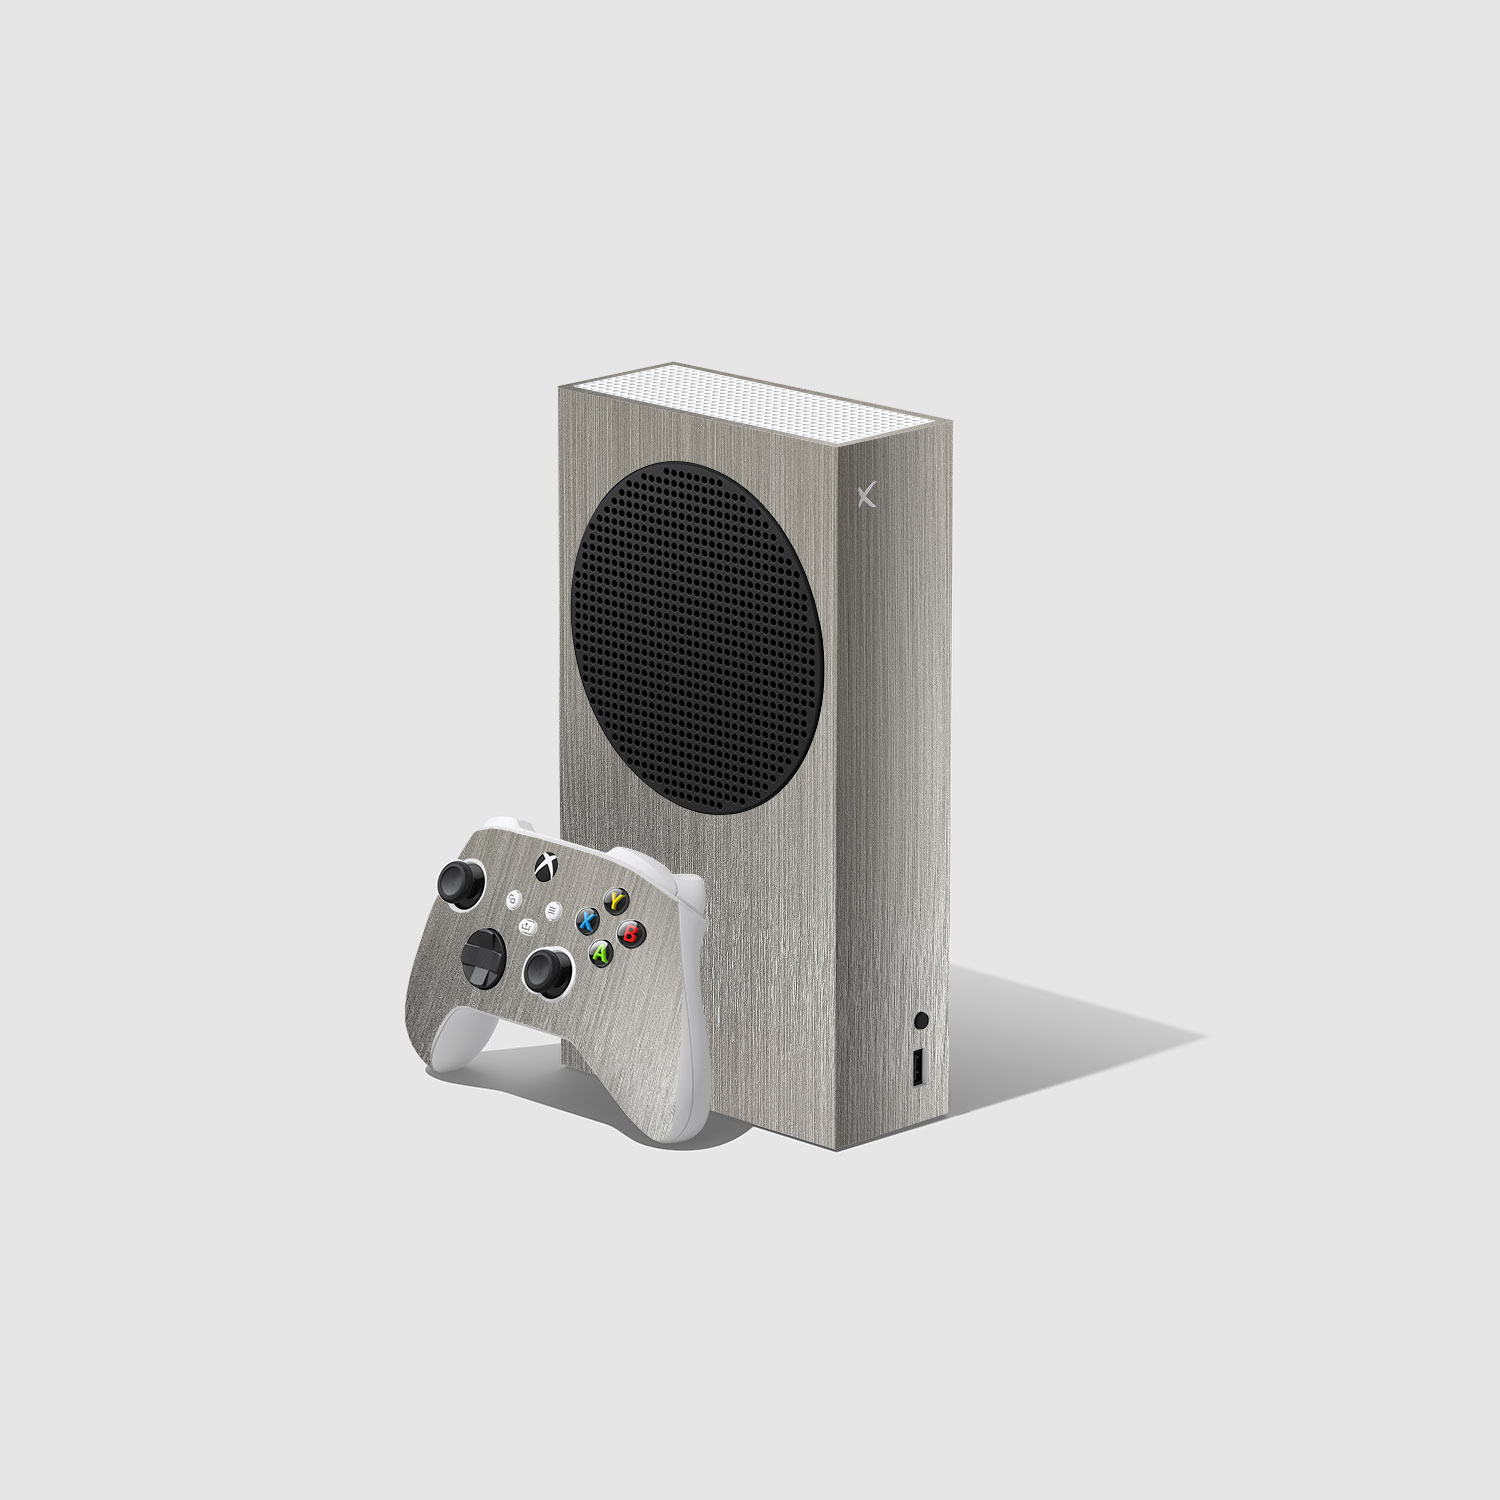 Silver Metallic Xbox Series S Console and Controller Skin Wrap